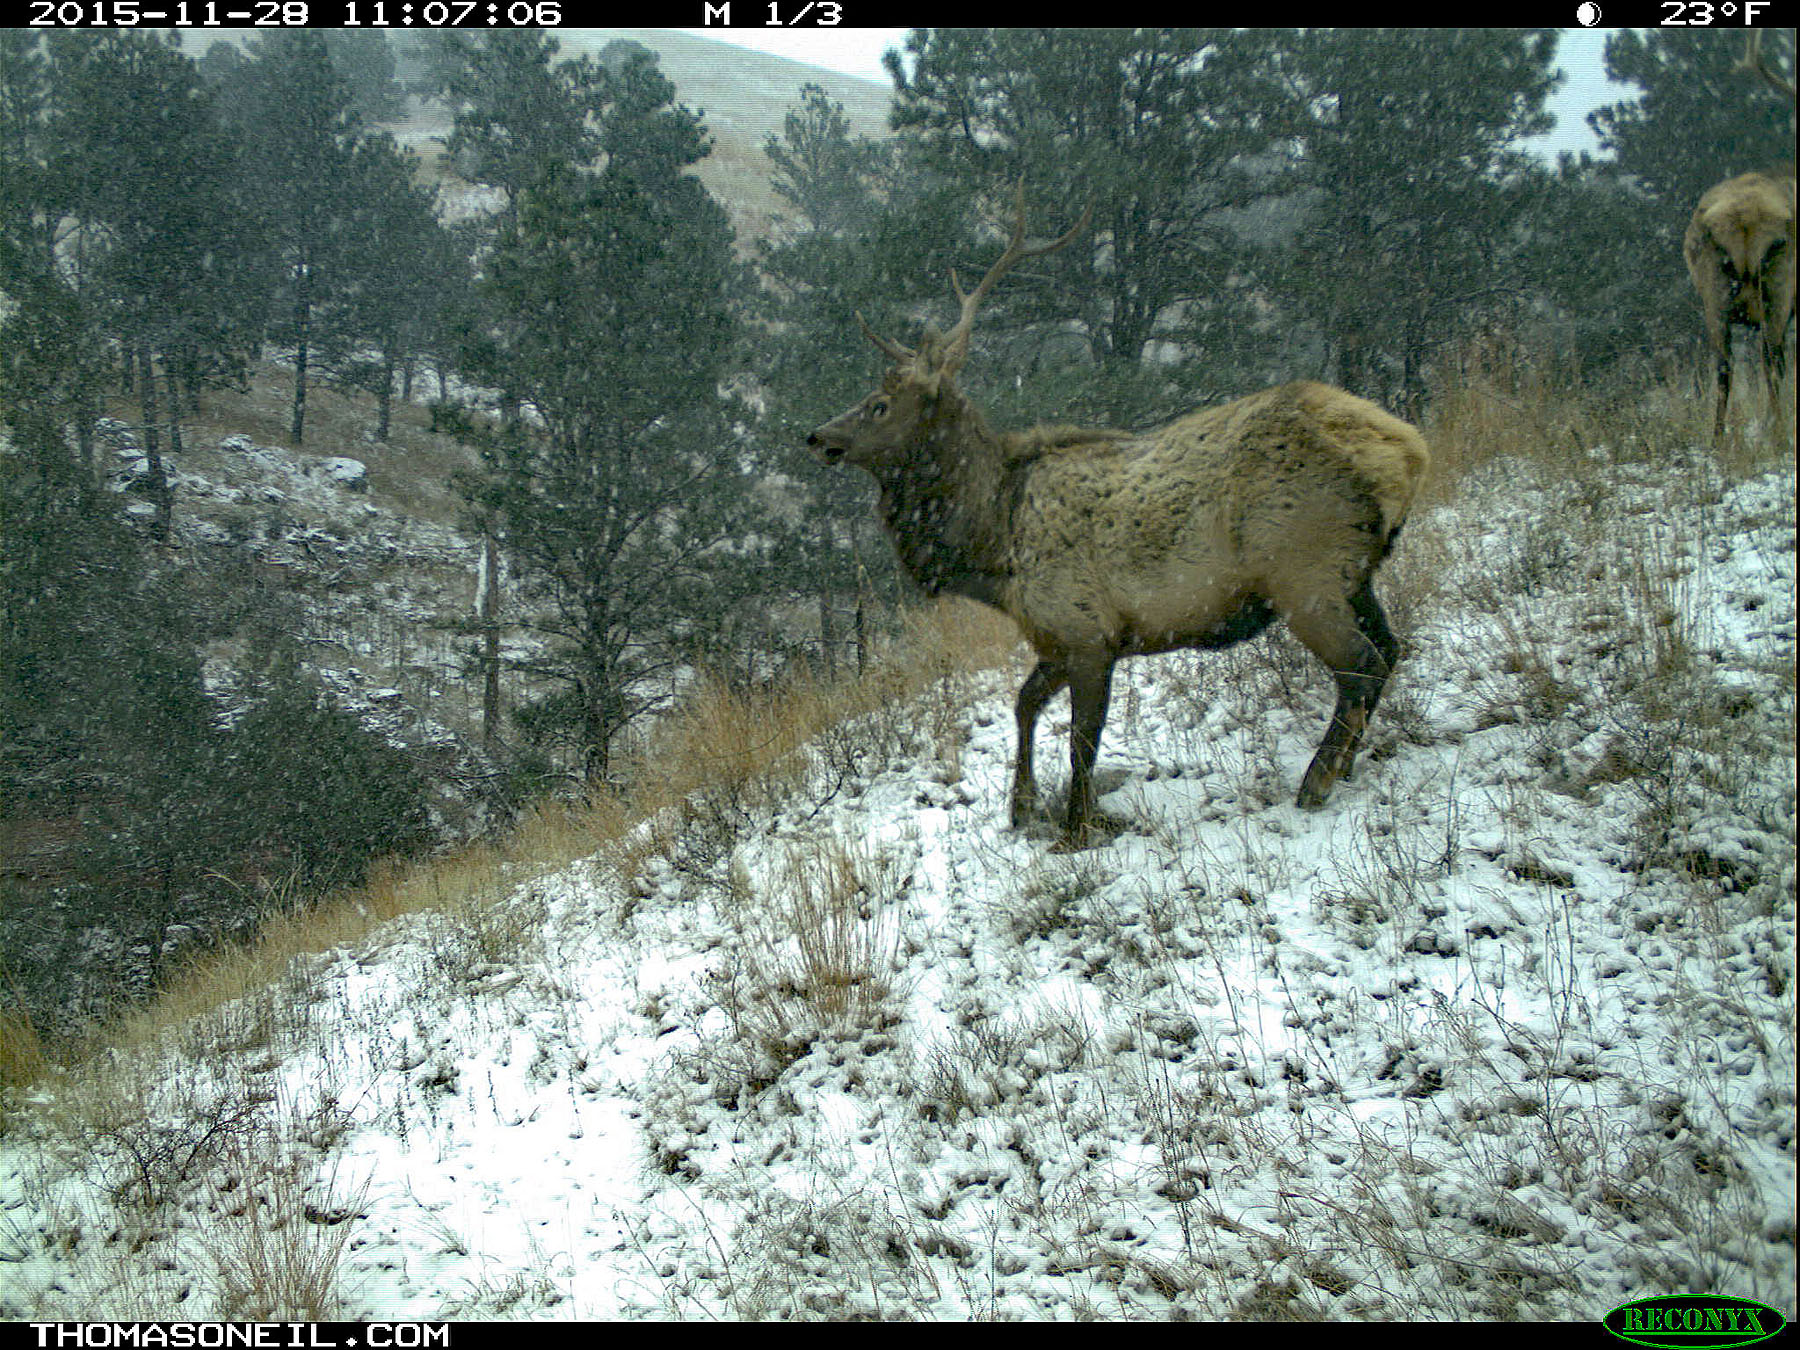 Trailcam image from Wind Cave National Park in November 2015, elk in show.  Click for next photo.